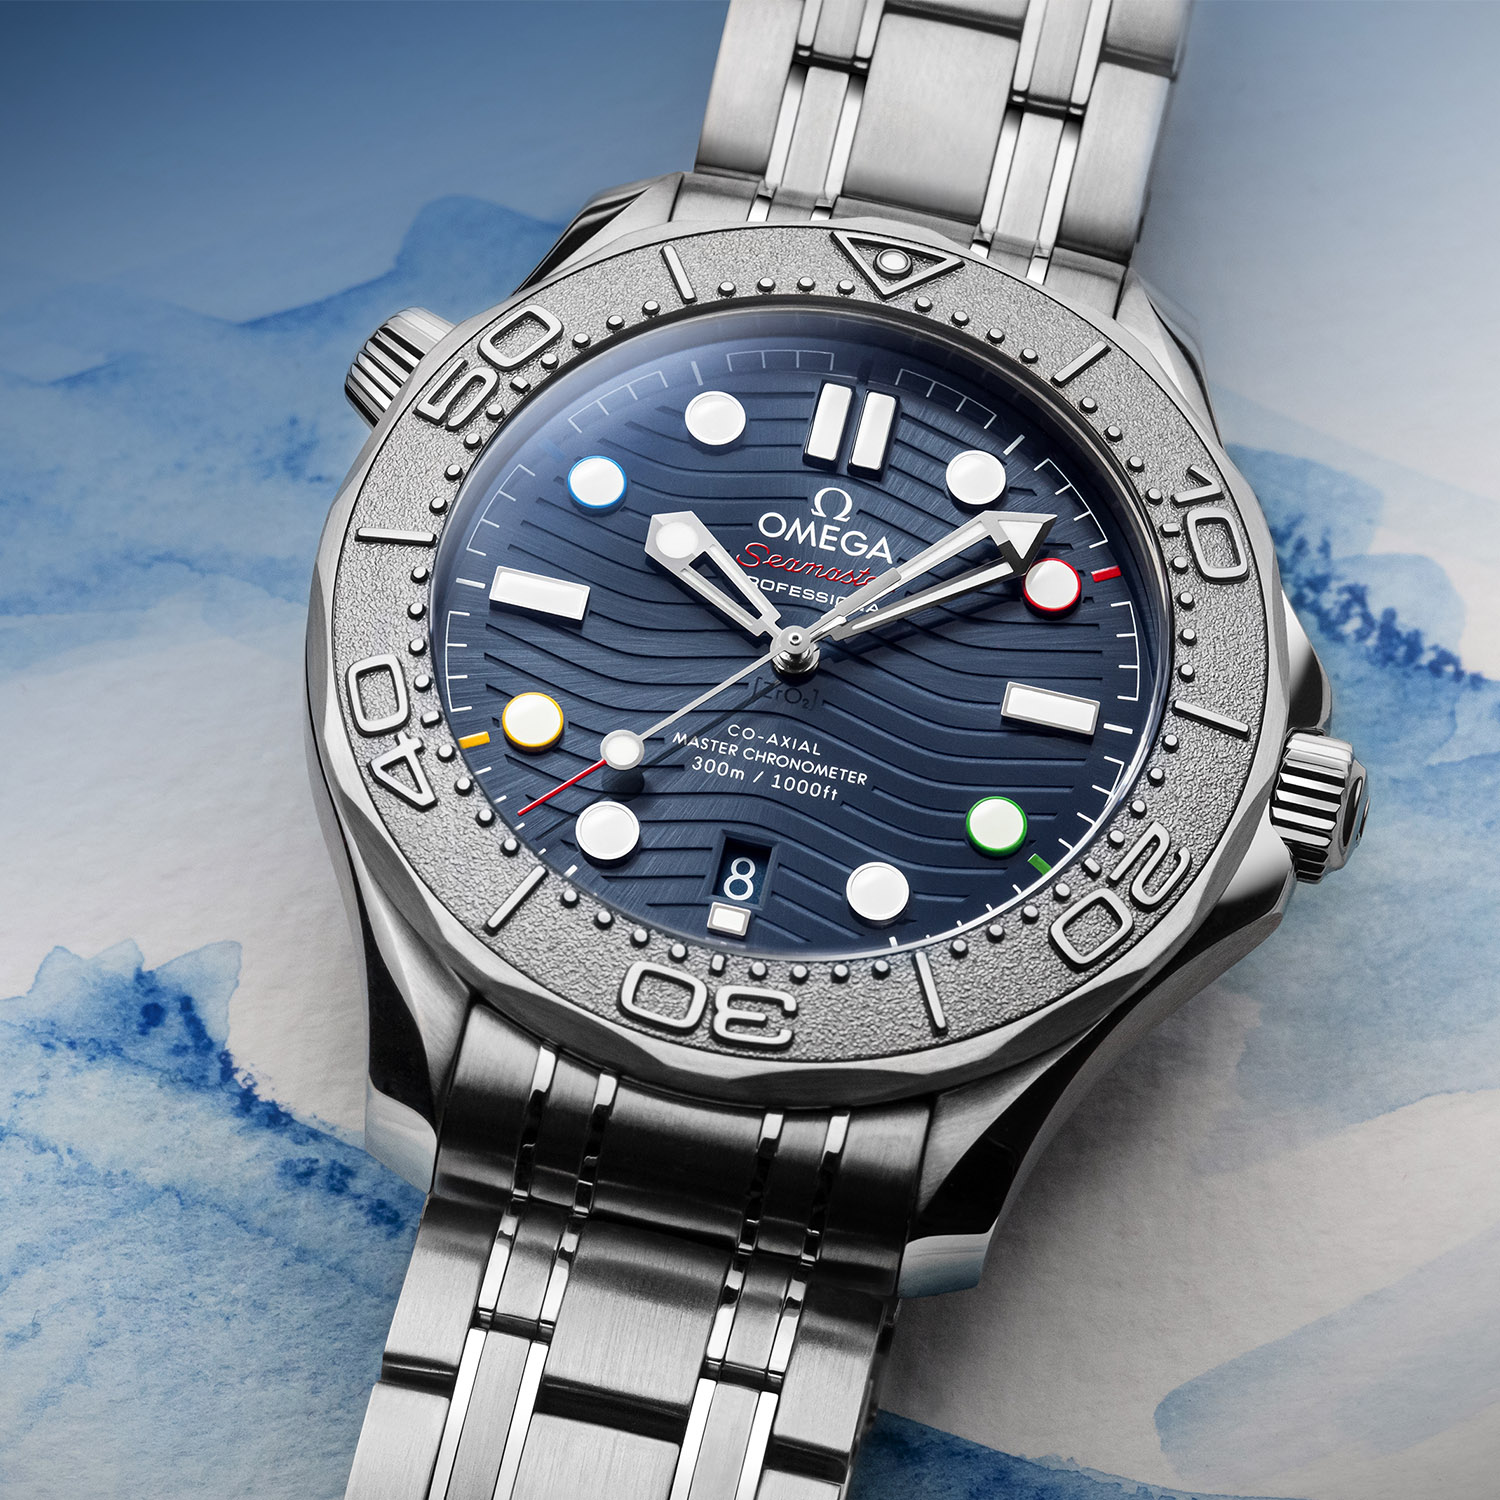 Omega Seamaster Diver 300M Beijing 2022 Special Edition 522-30-42-20-03-001 - 2